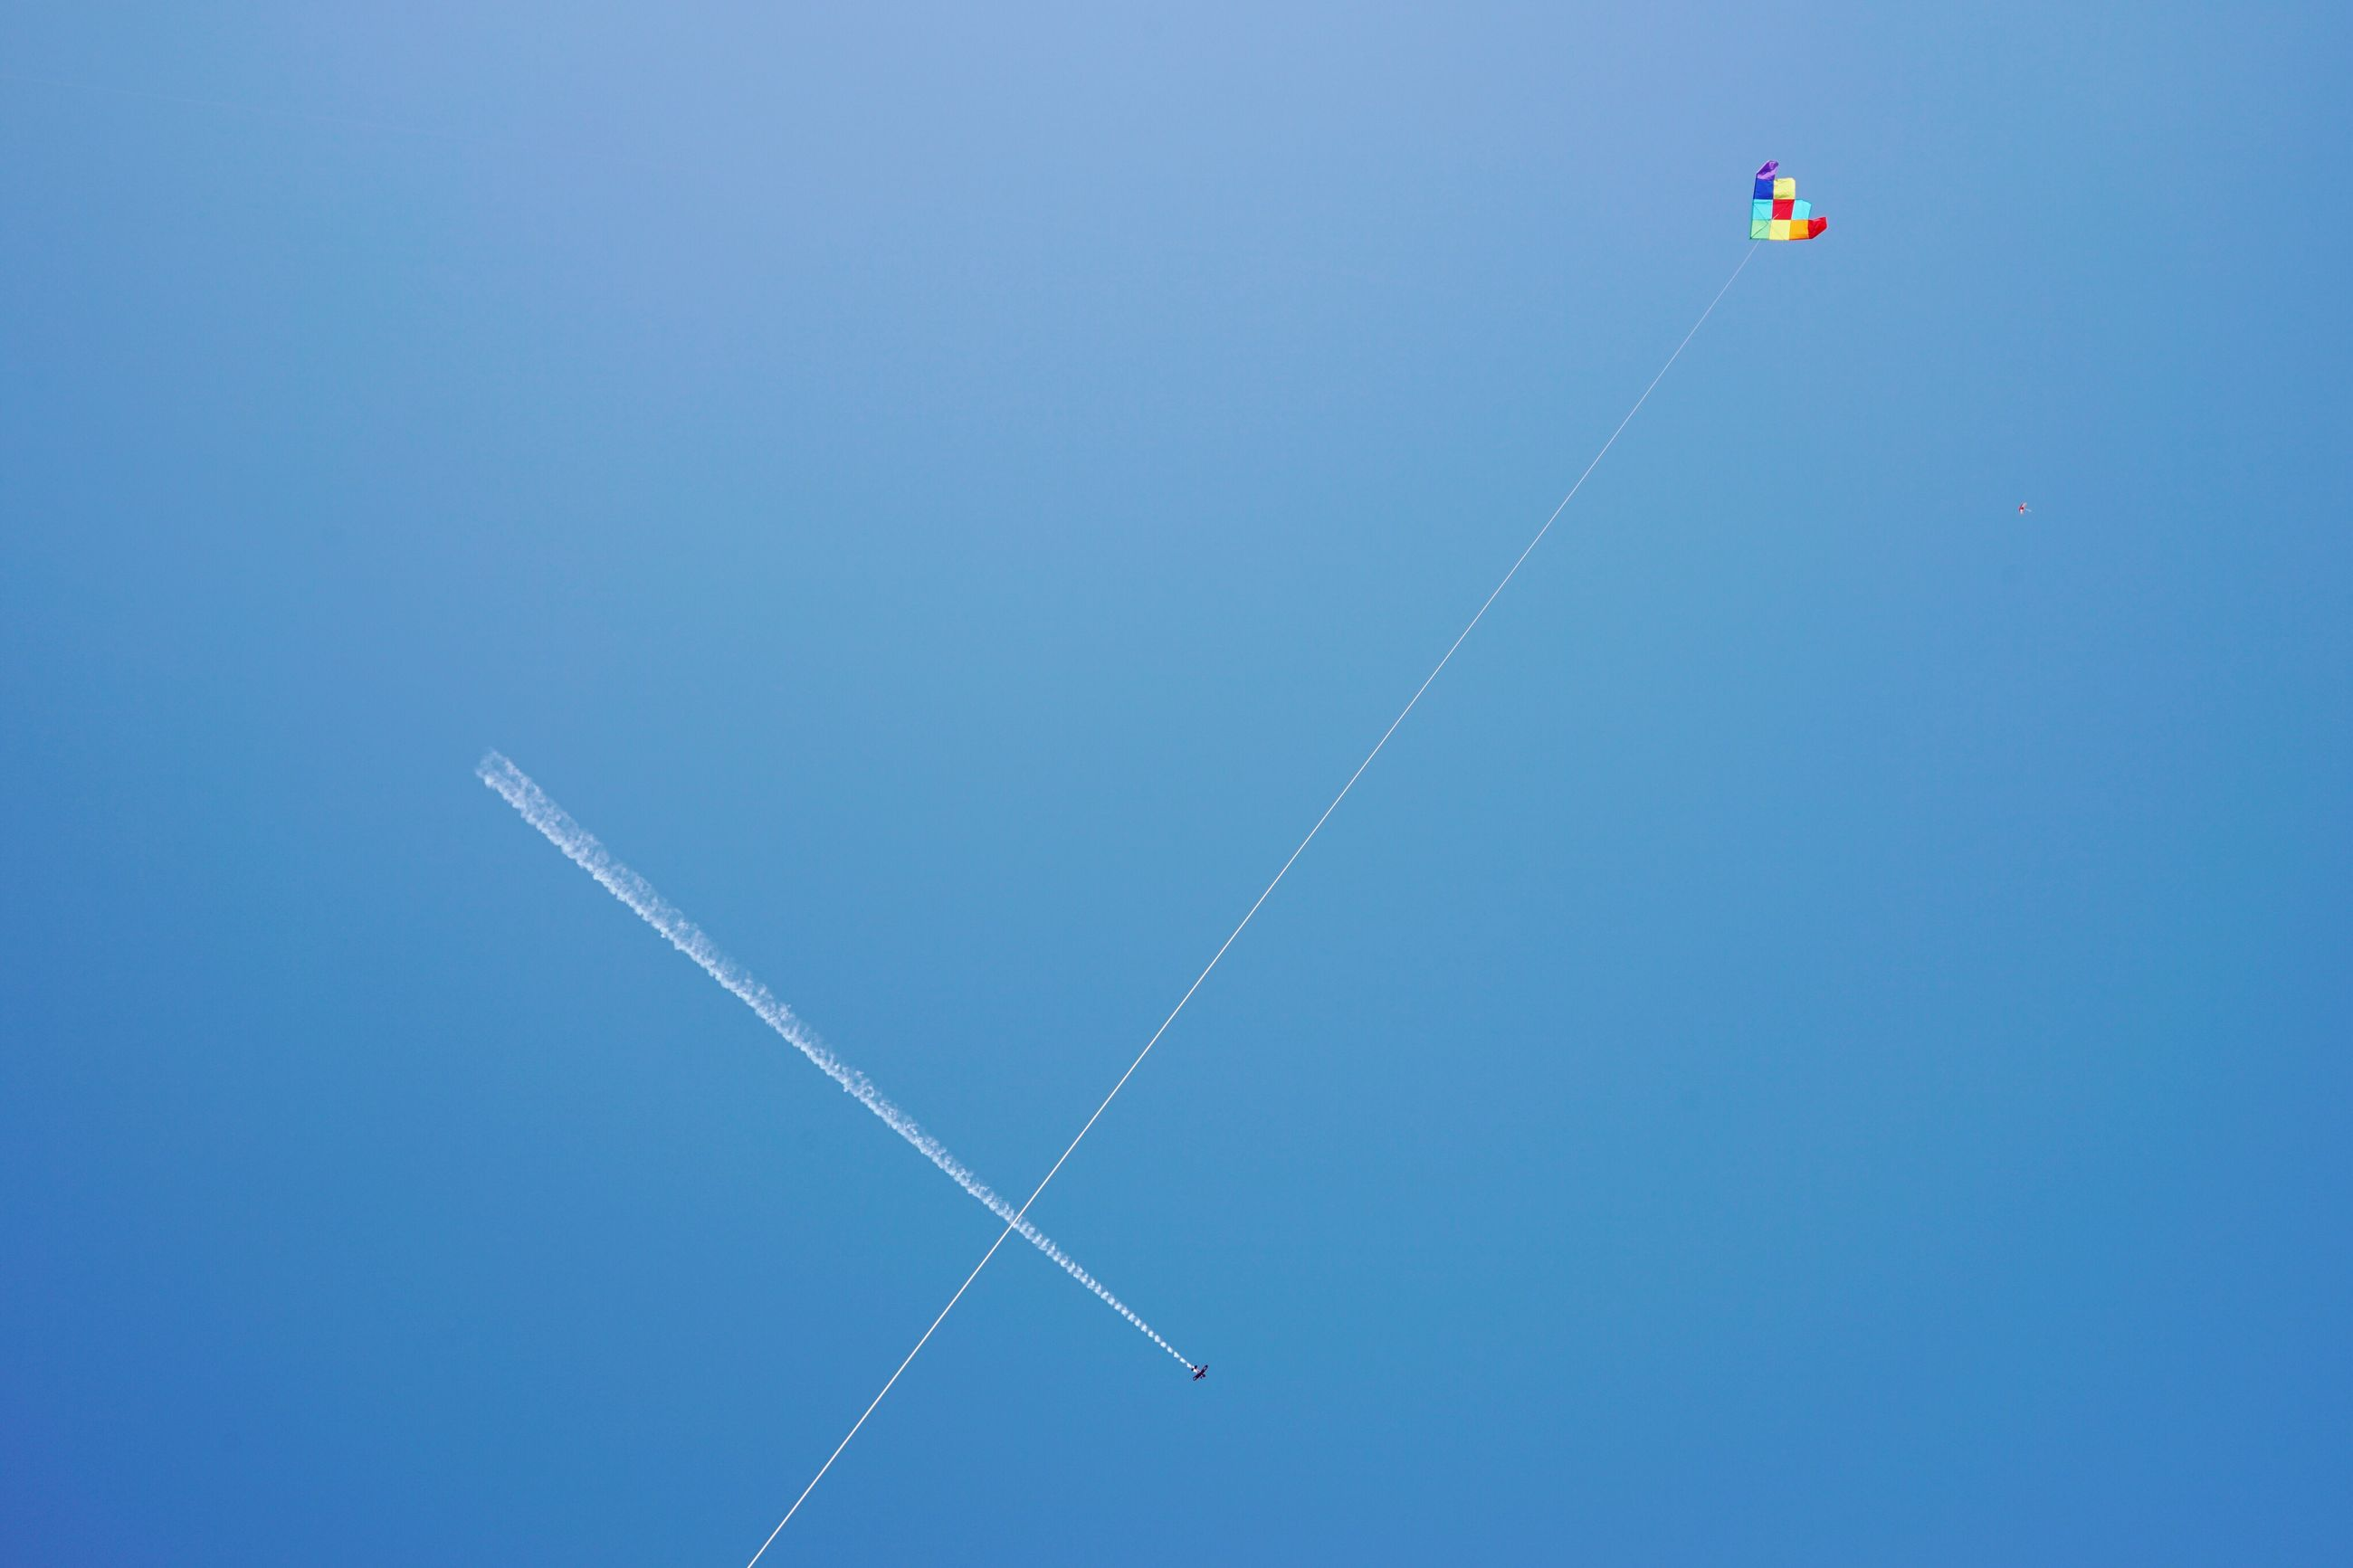 clear sky, copy space, blue, flying, low angle view, transportation, flag, vapor trail, mid-air, airplane, air vehicle, day, outdoors, no people, mode of transport, travel, nature, tranquility, wind, identity